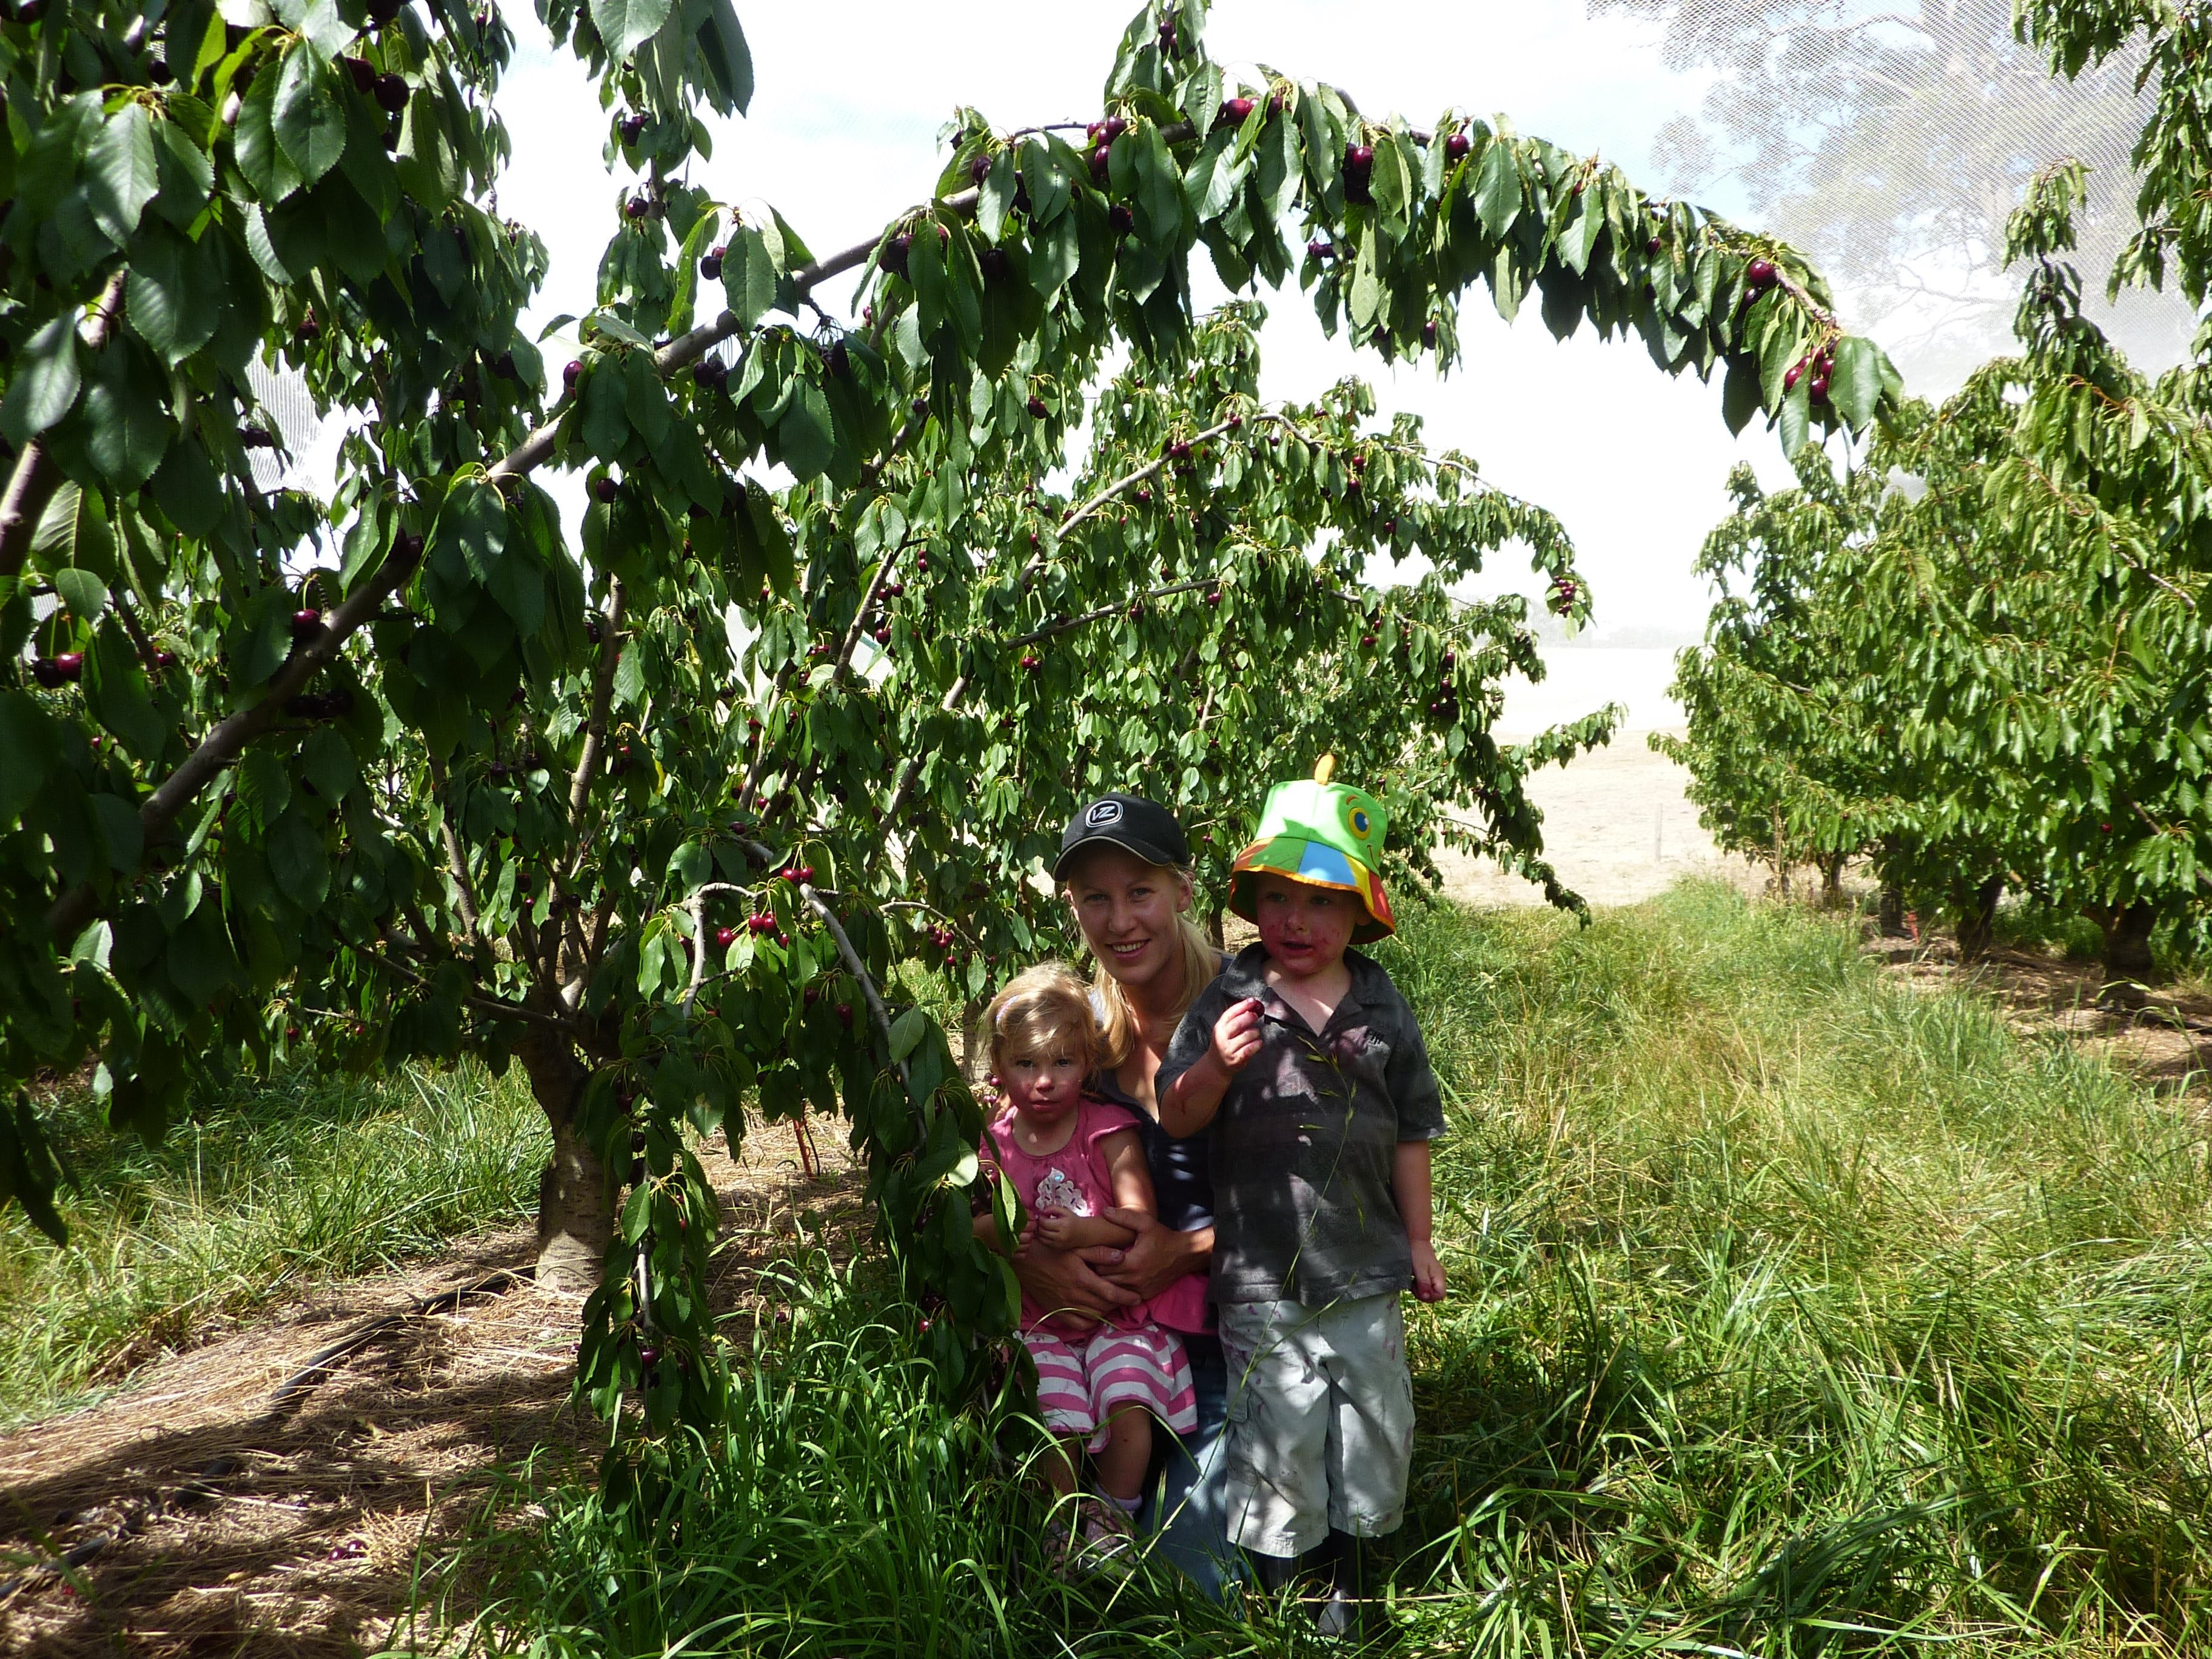 Harben Vale Pick Your Own Cherries - Accommodation Search